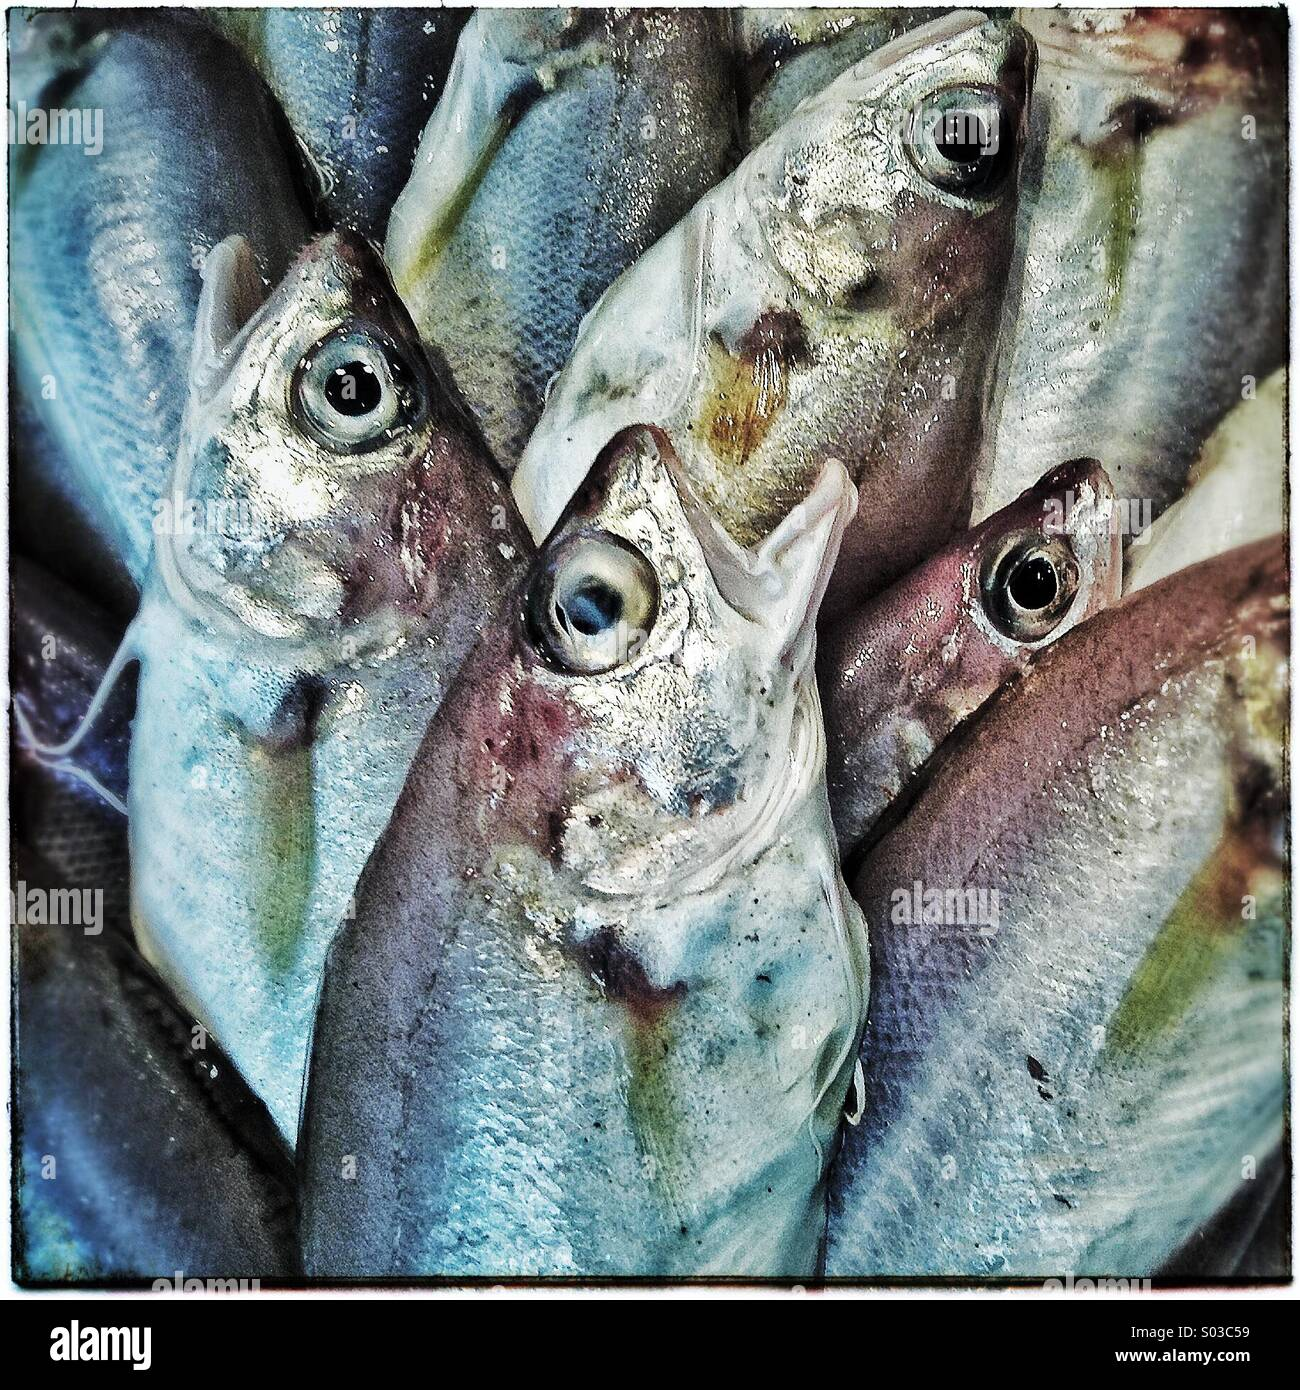 Fresh fishes for sale - Stock Image